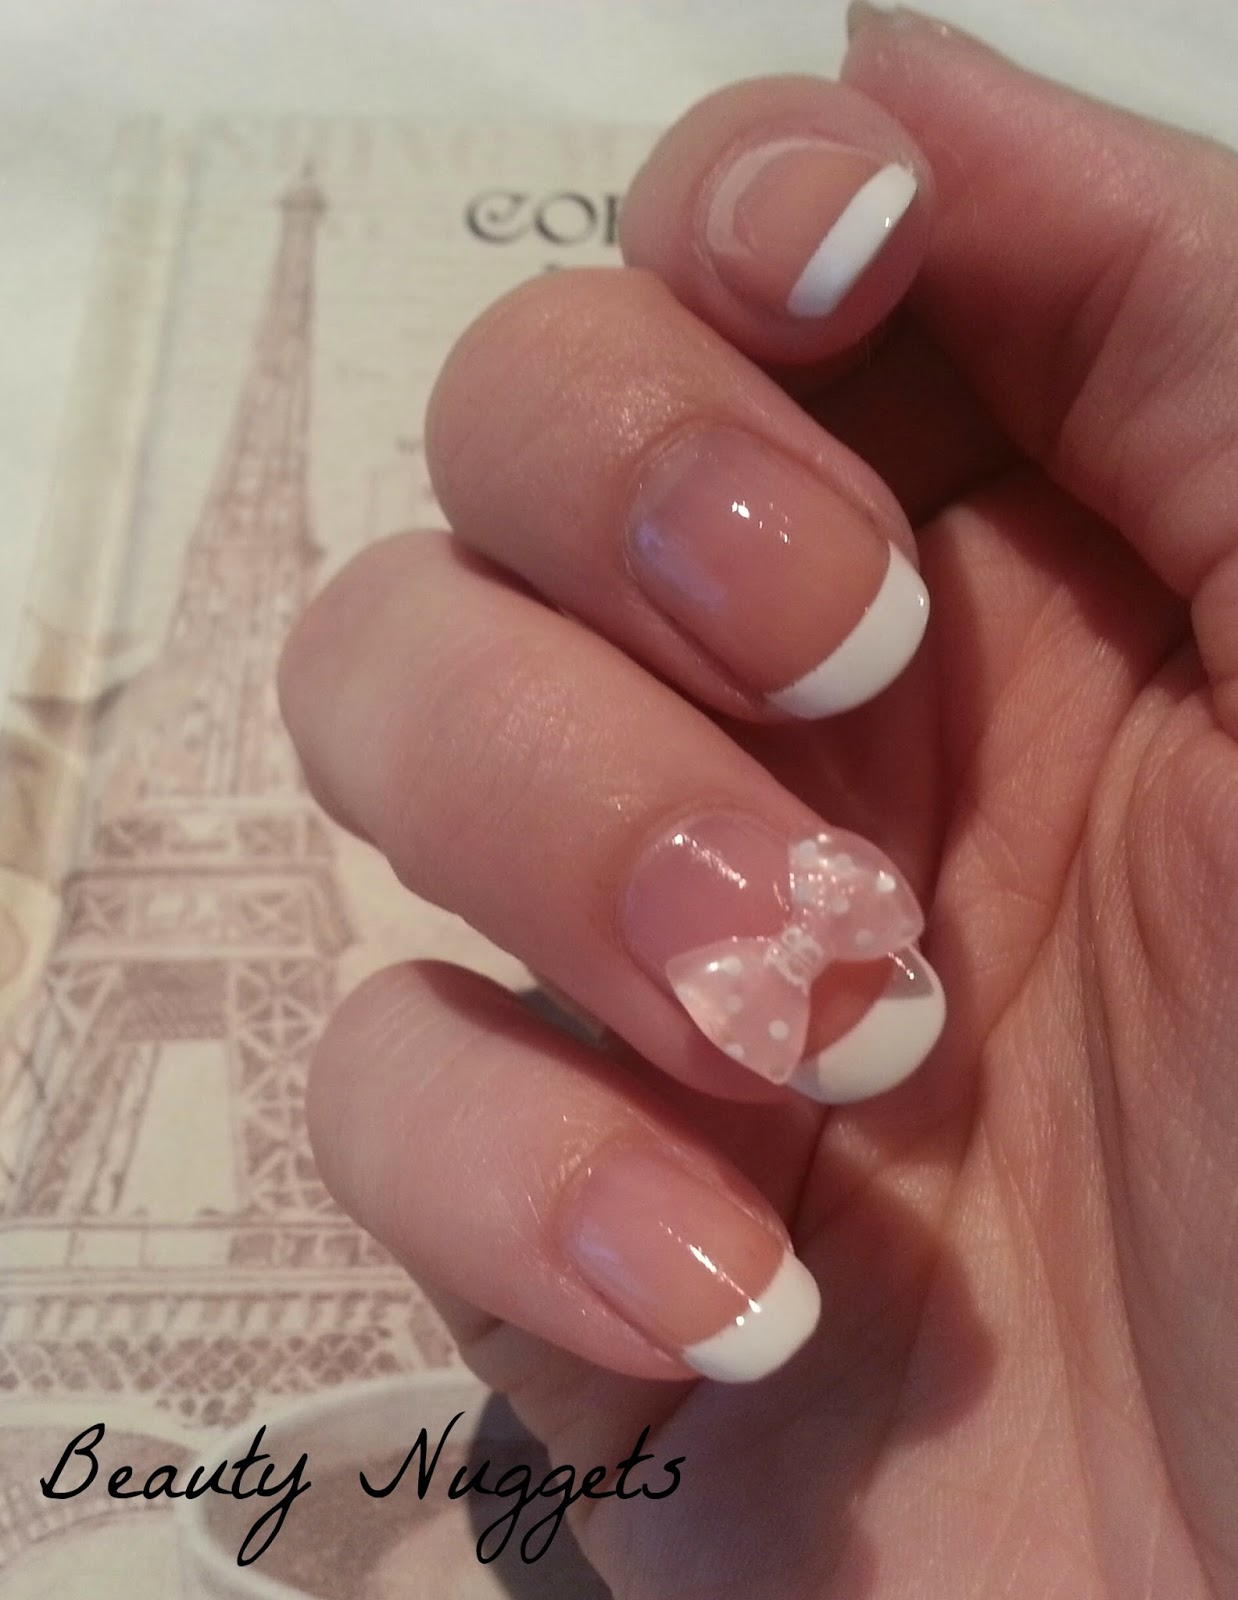 Beauty Nuggets: French Manicure with 3D Nail Art